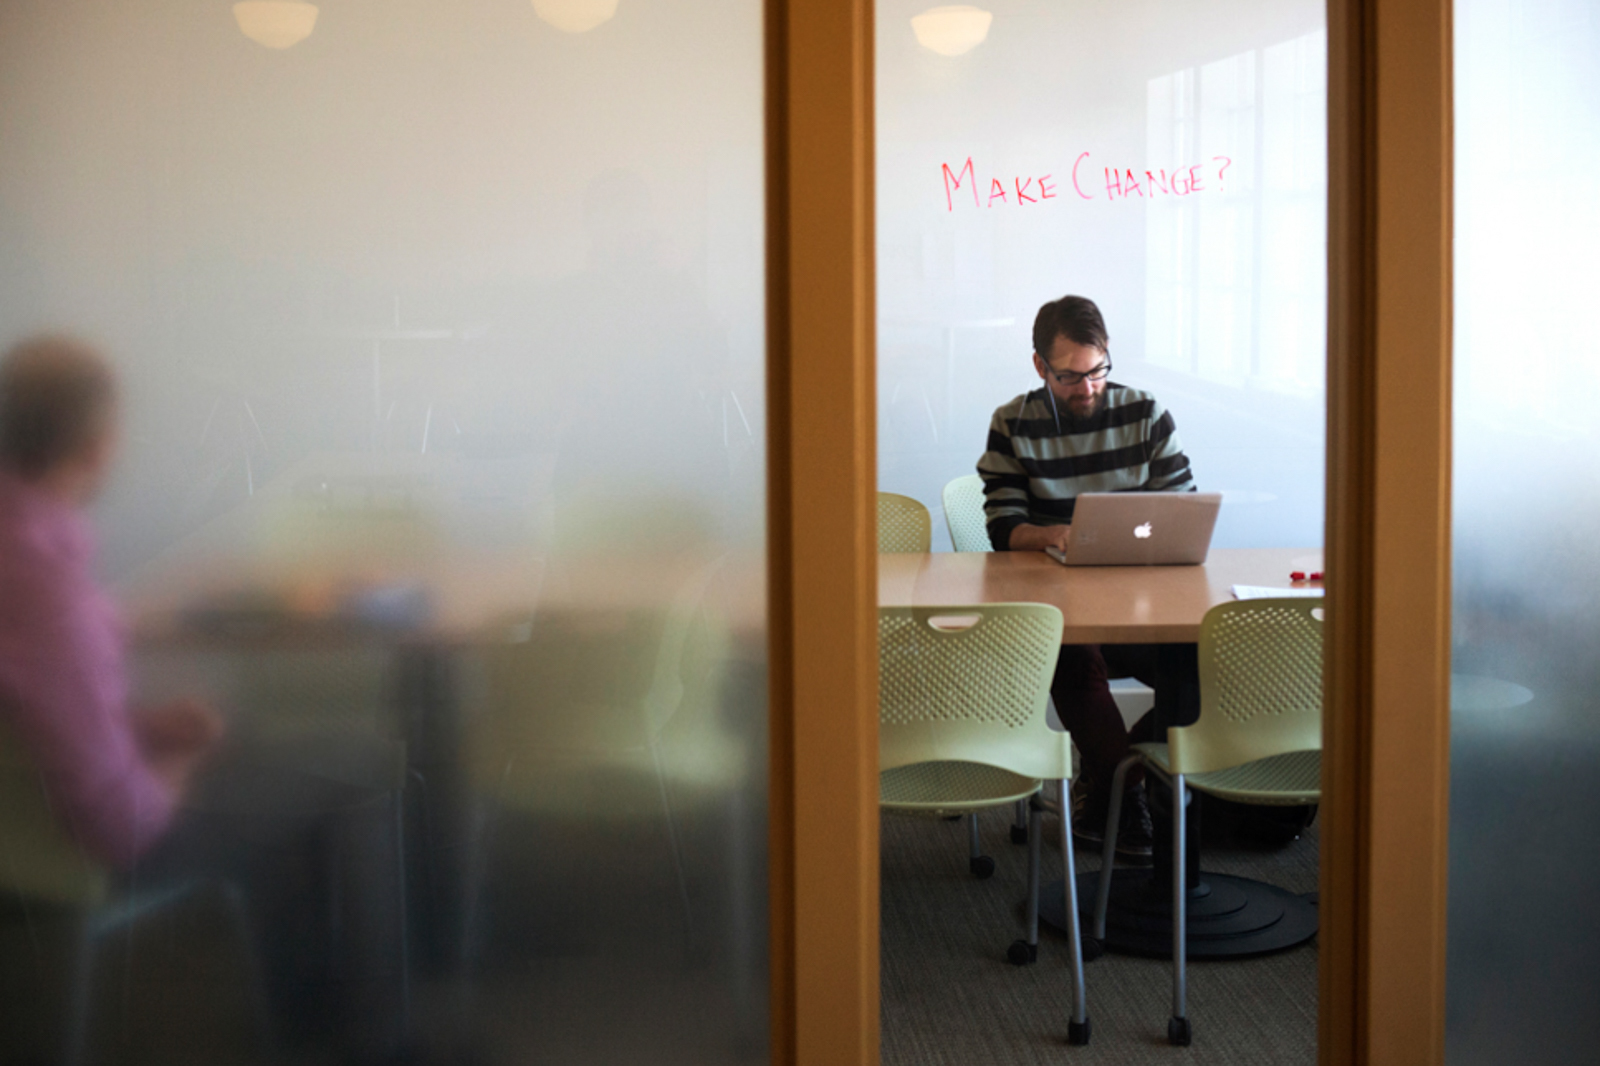 Student sitting inside room, working on a laptop